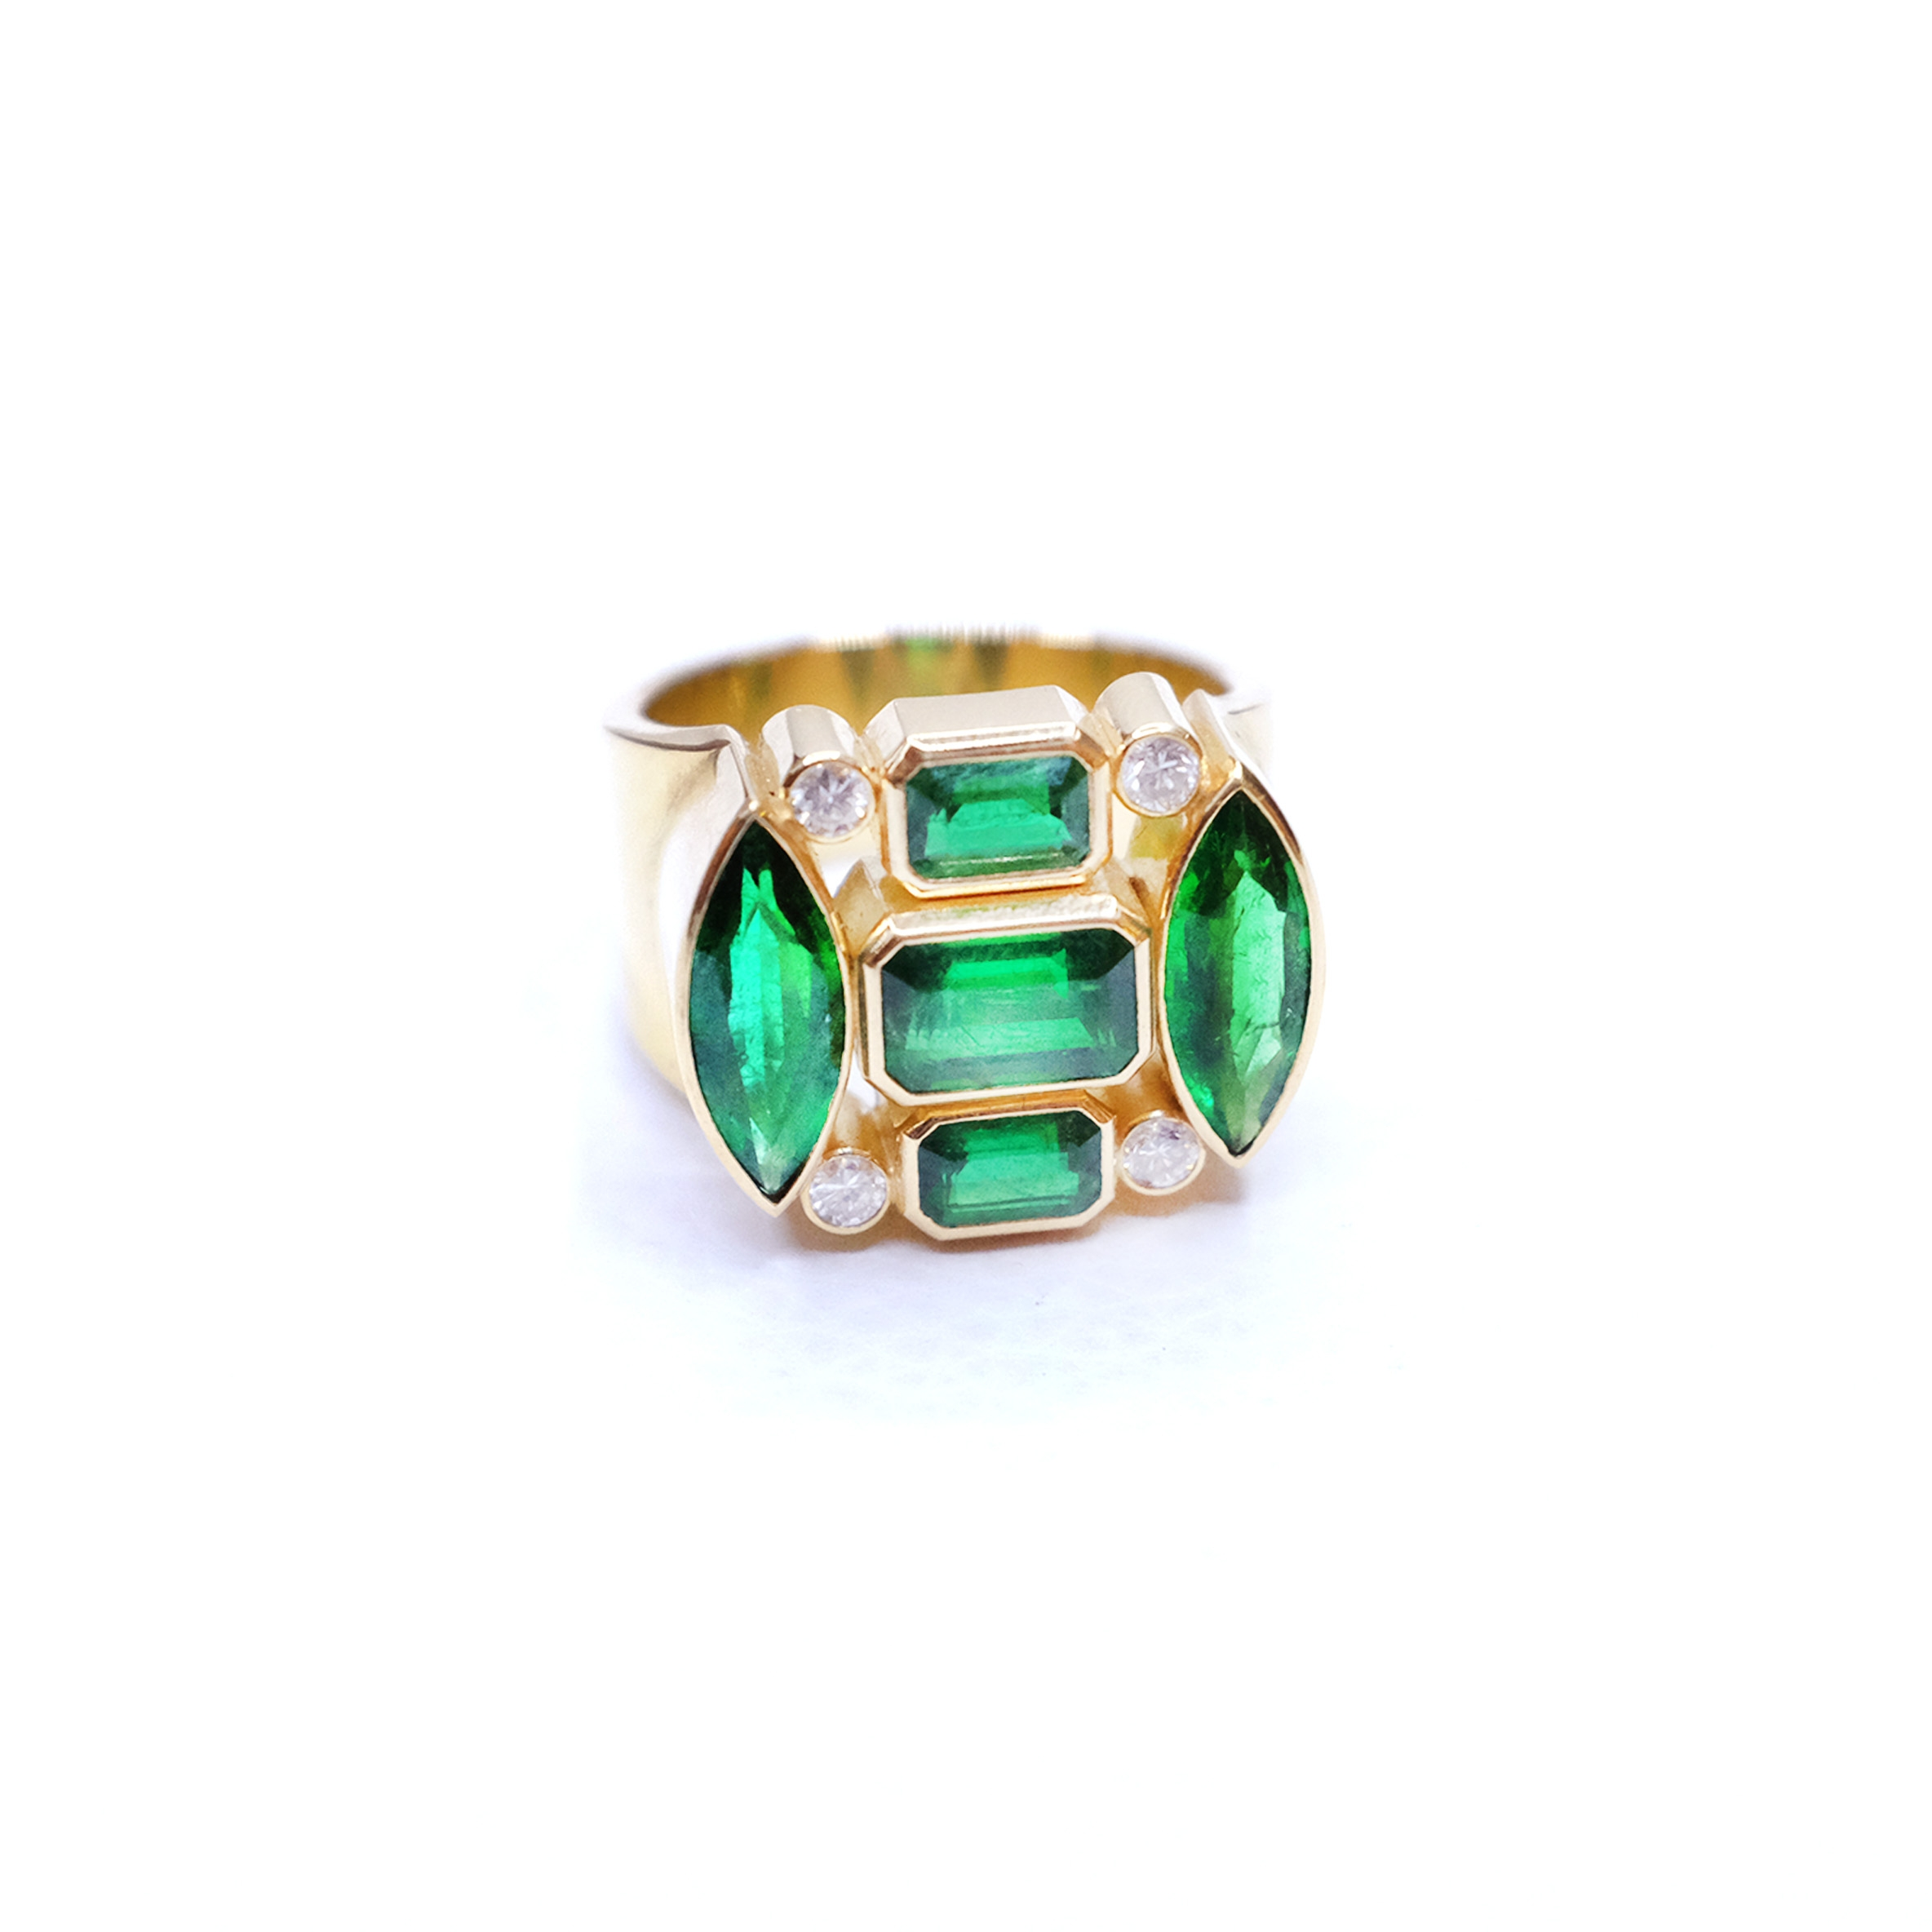 rings green hbz wedding index emeral engagement unique beautiful emerald bridal fashion